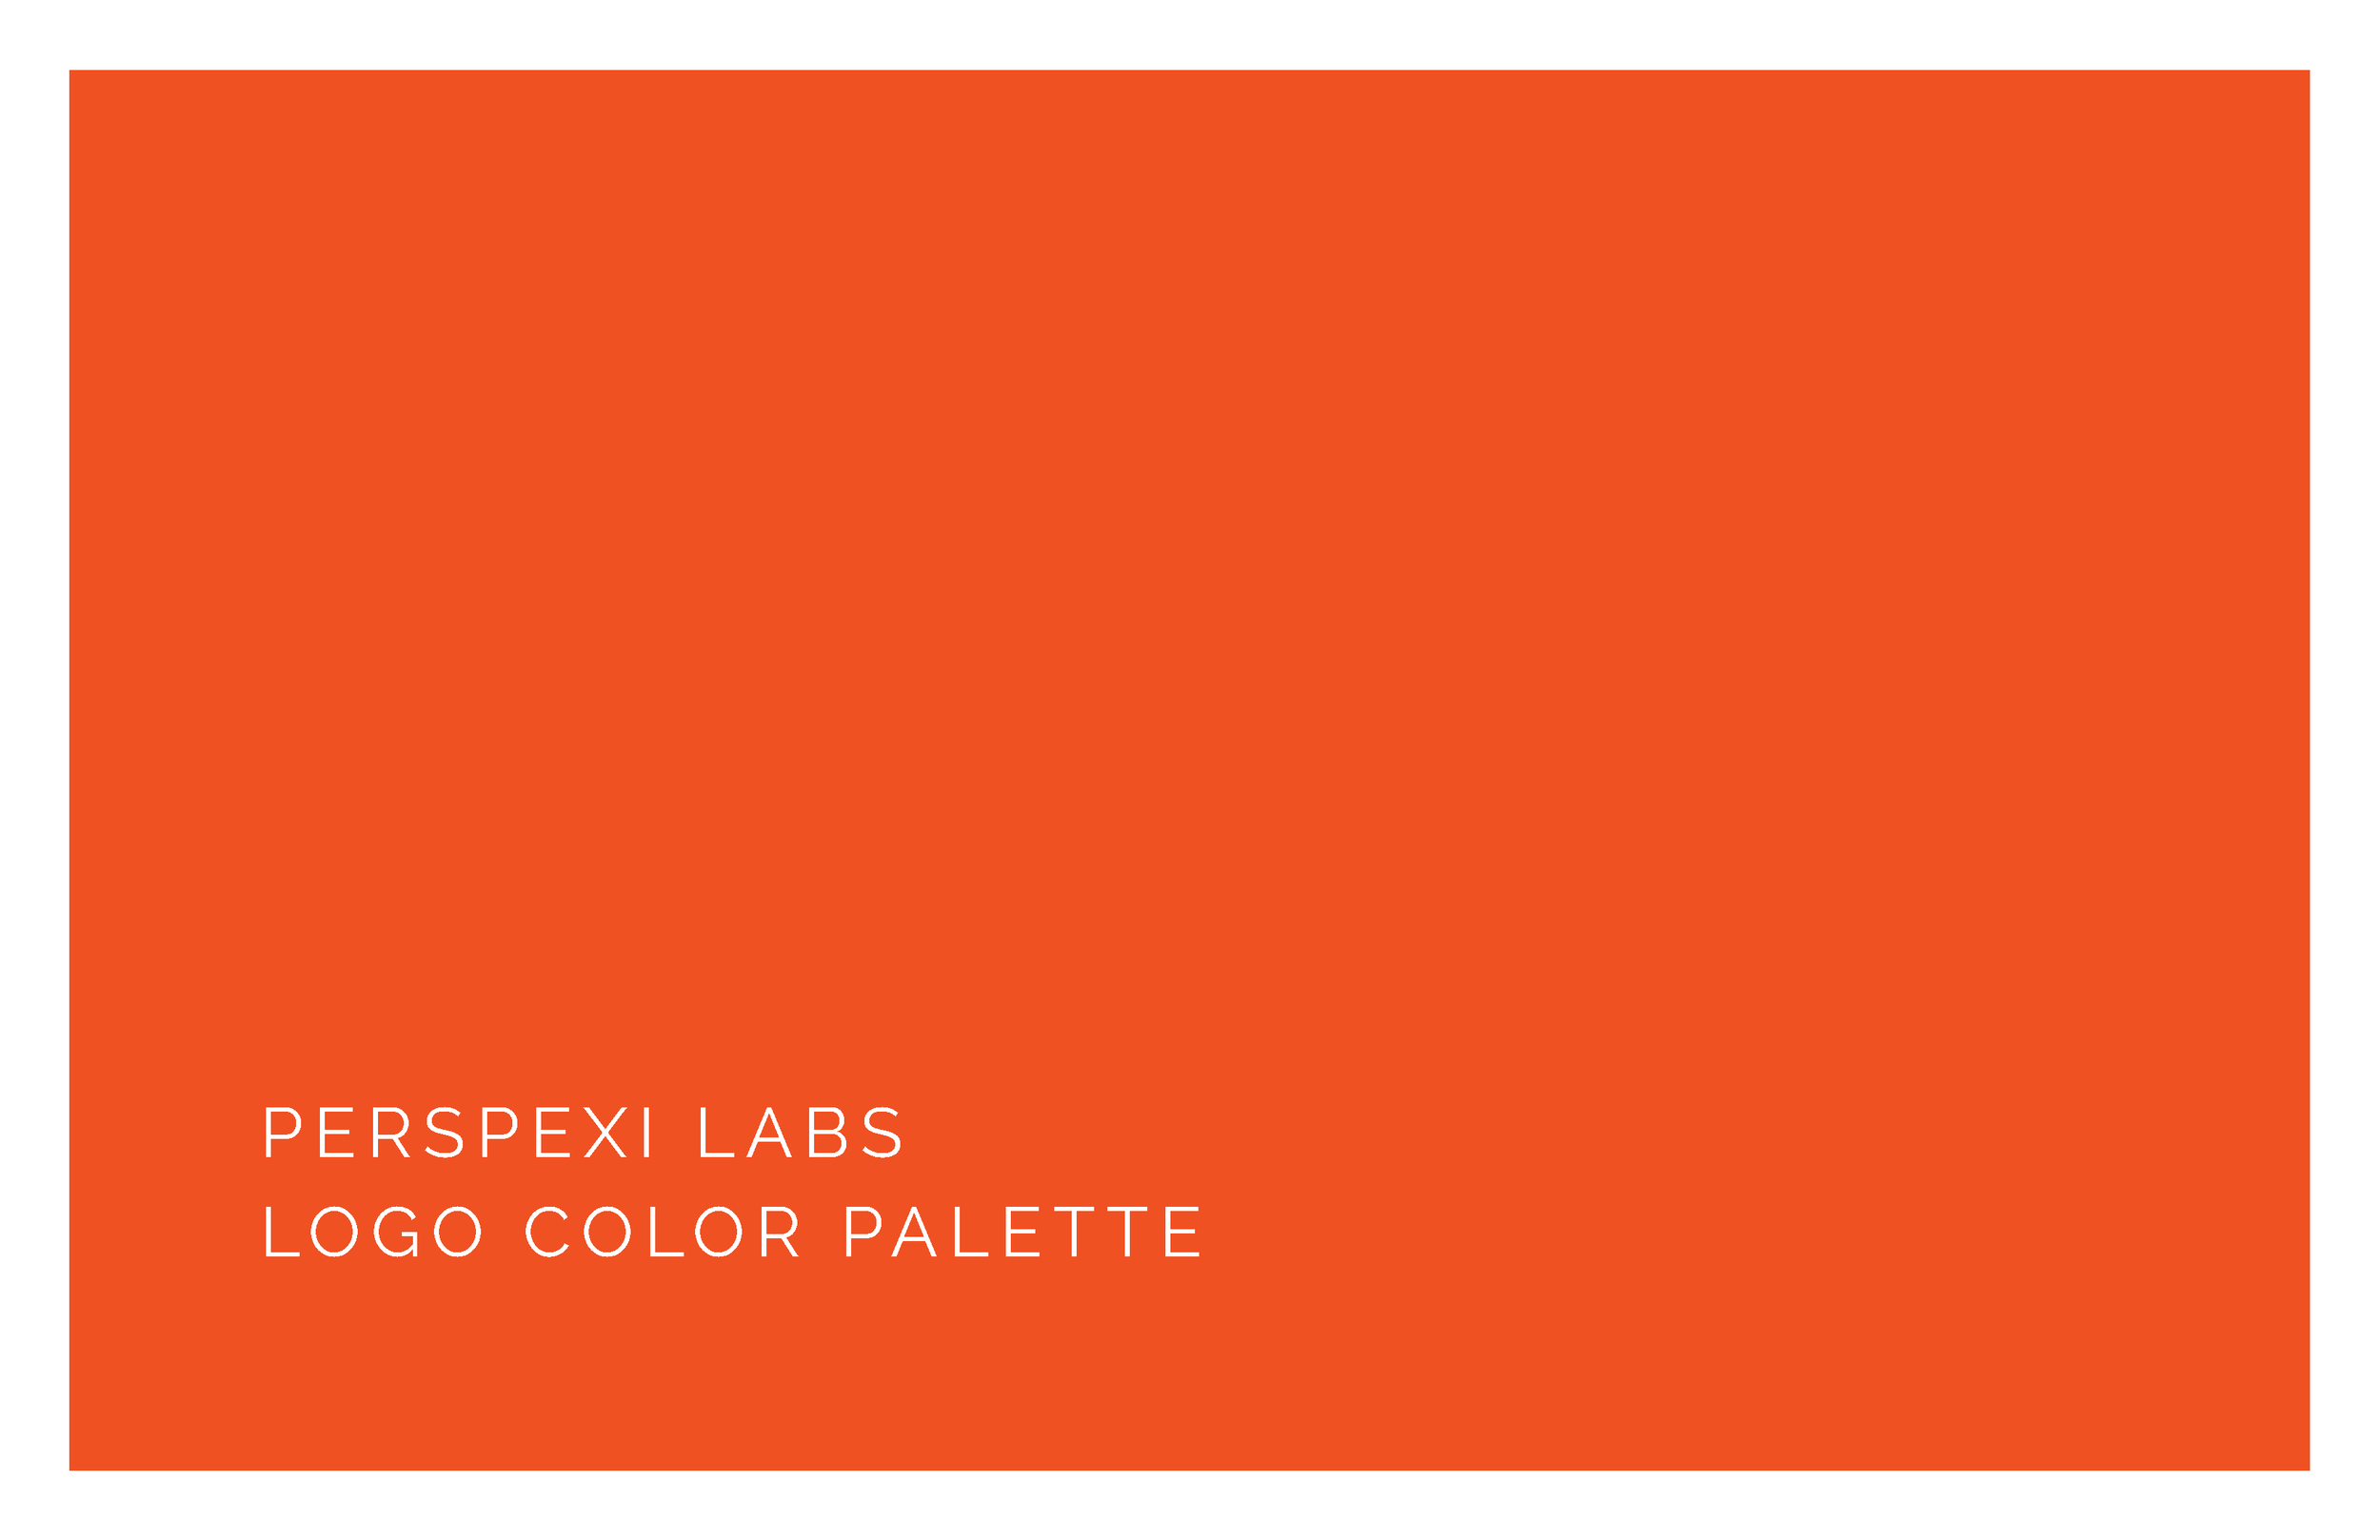 0412_StyleGuide_PerspexiLabs_Page_06.png